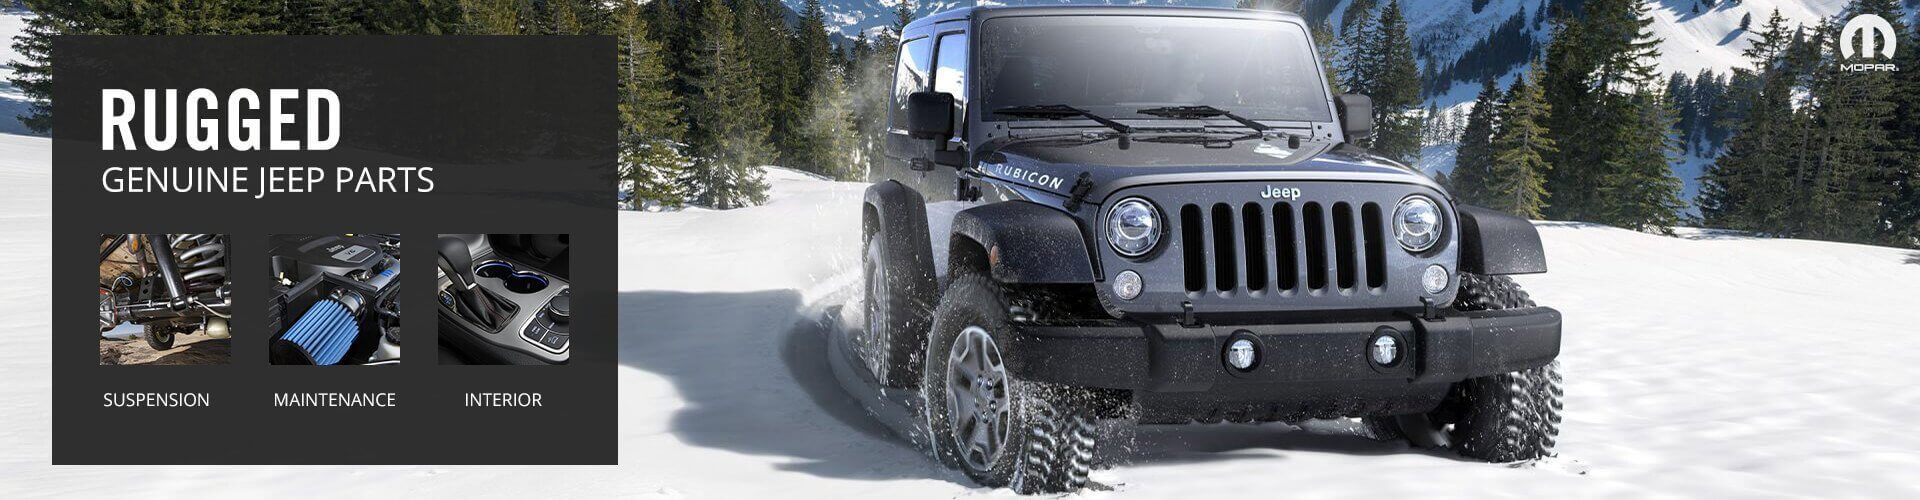 Genuine Jeep Parts and Accessories